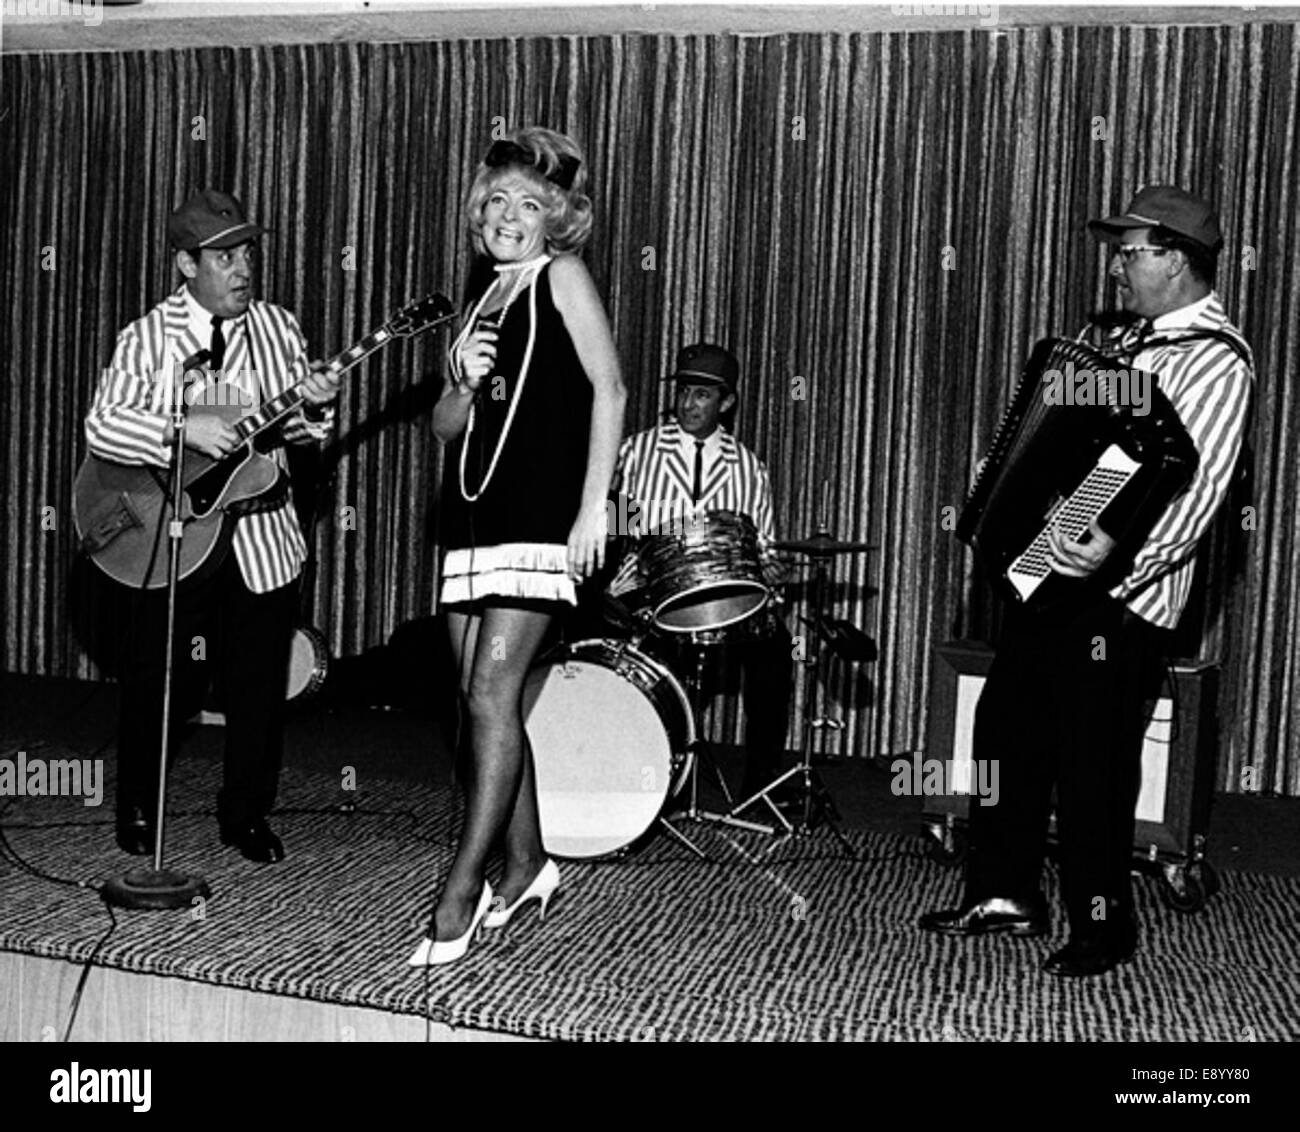 Band performing at the Lago Mar seaside resort - Fort 15312213169 o - Stock Image